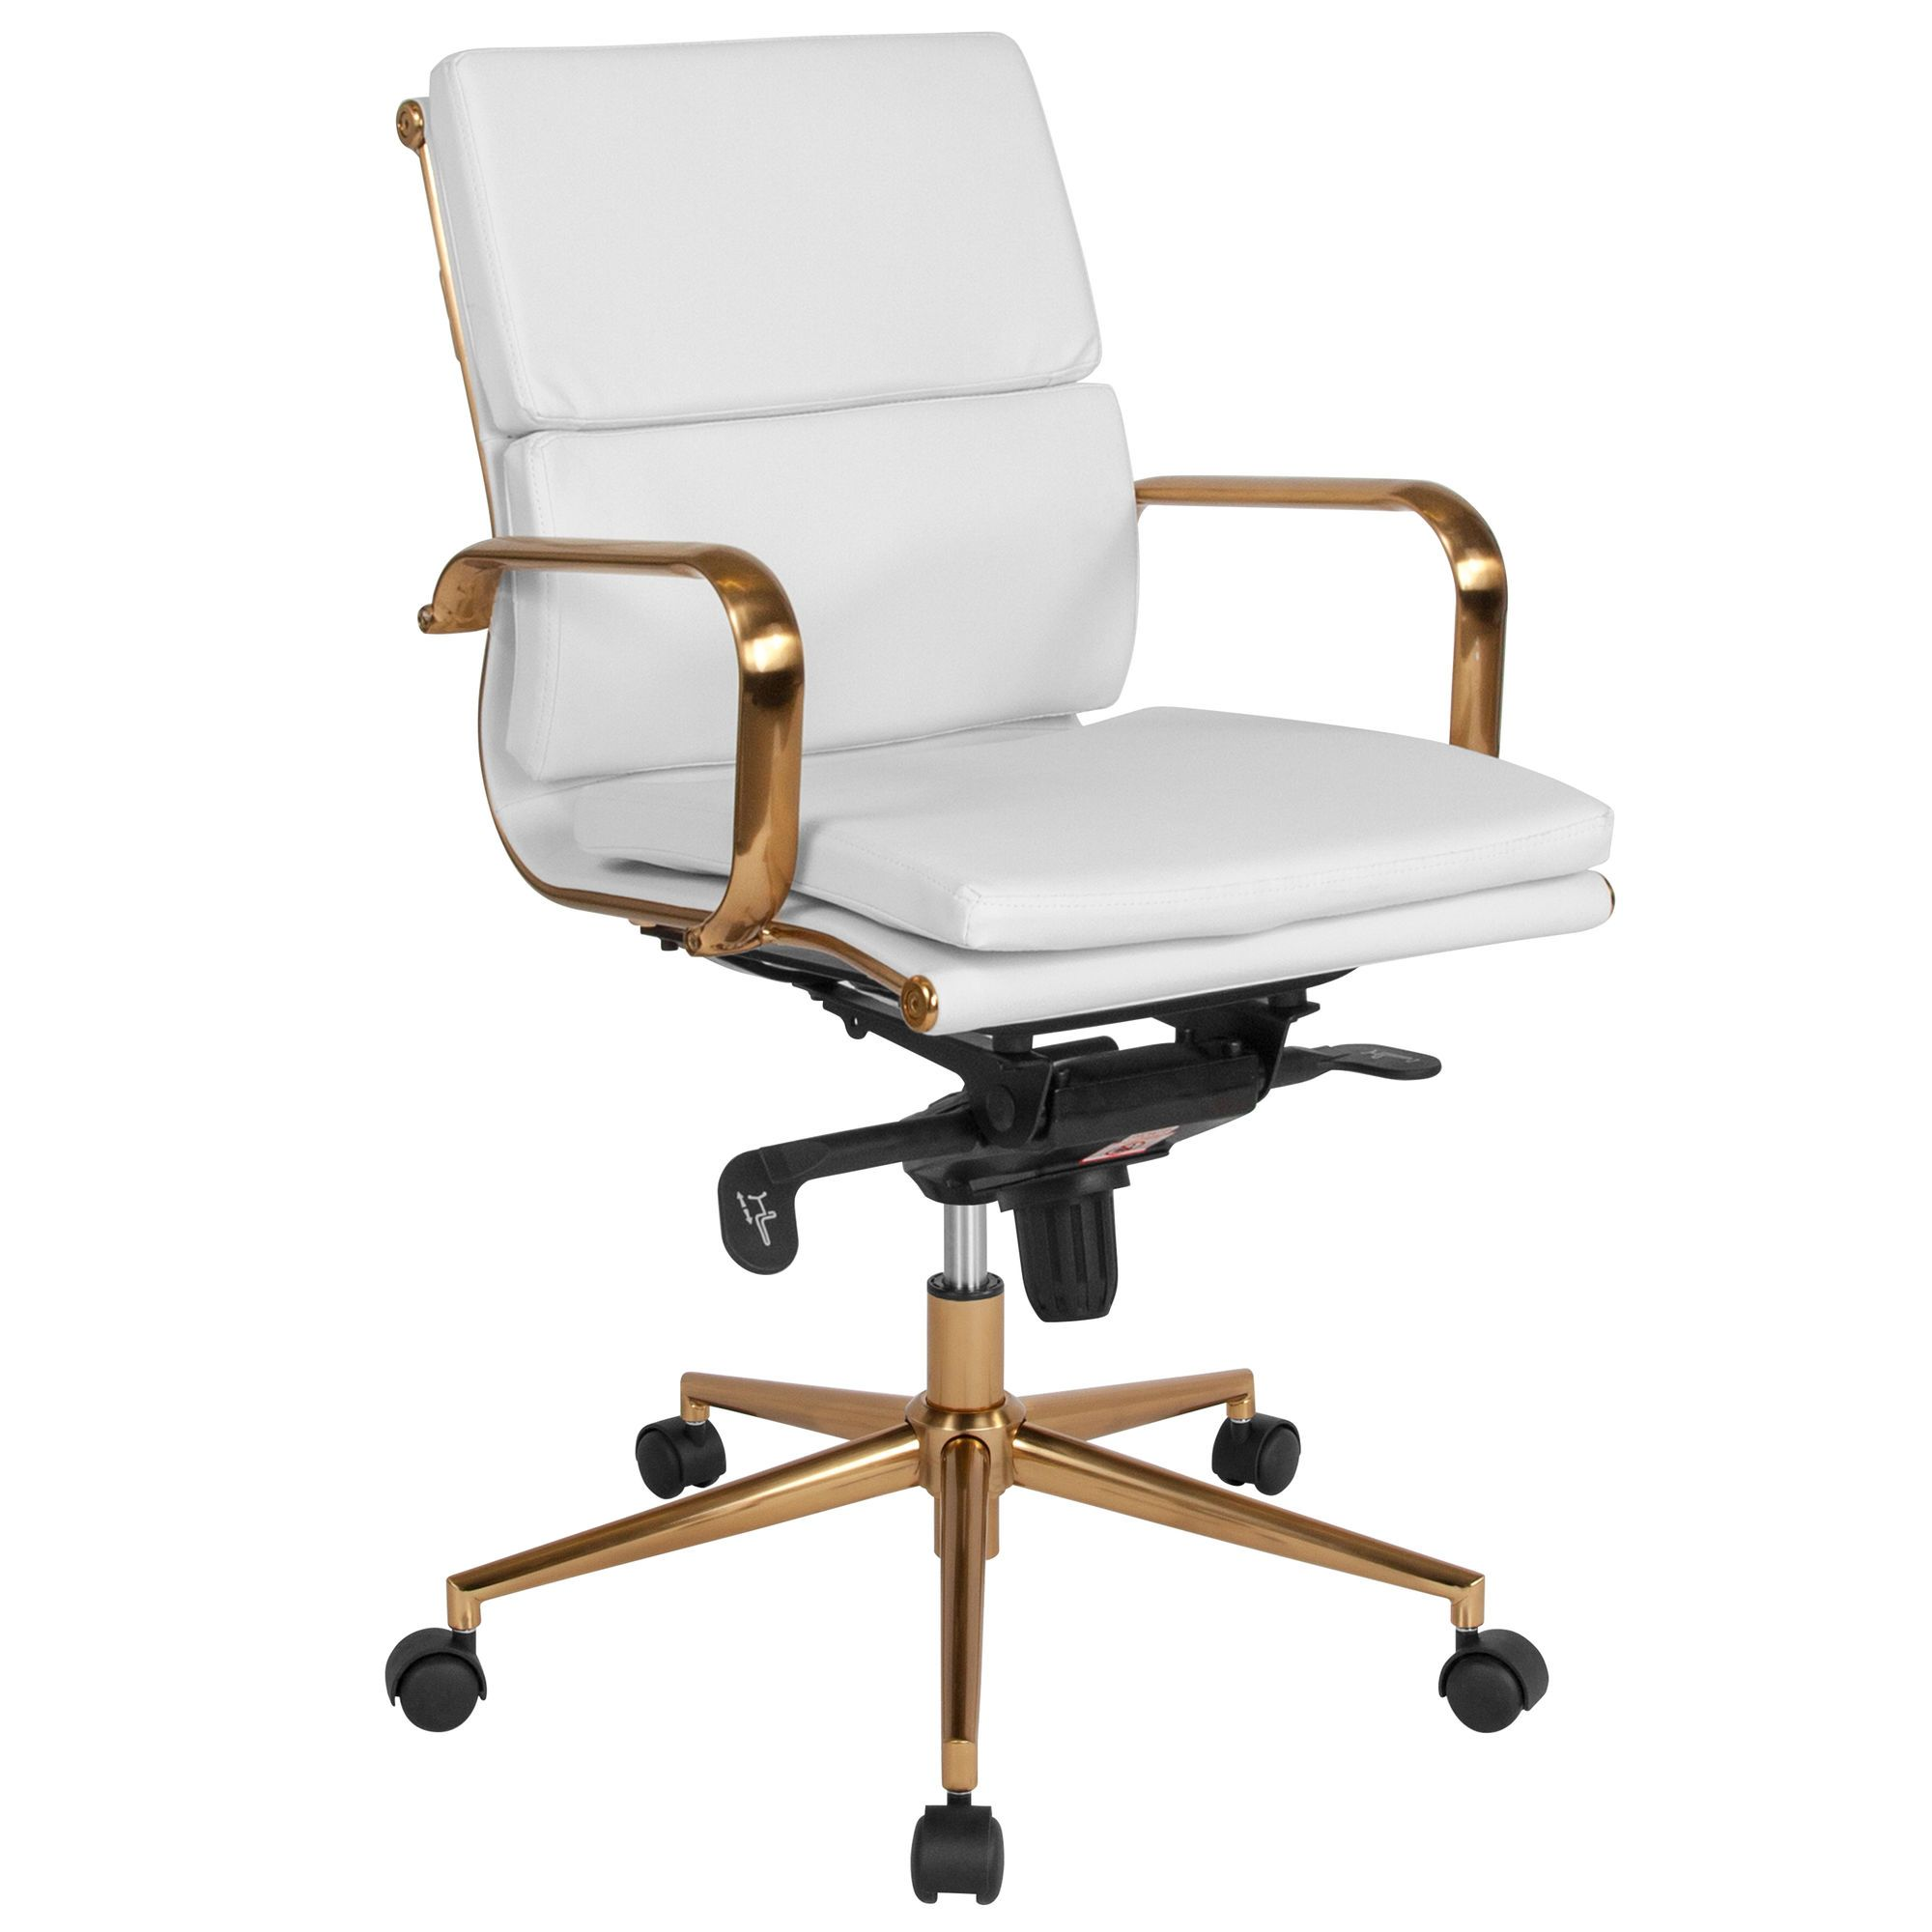 MidBack LeatherSoft Executive Swivel Office Chair with